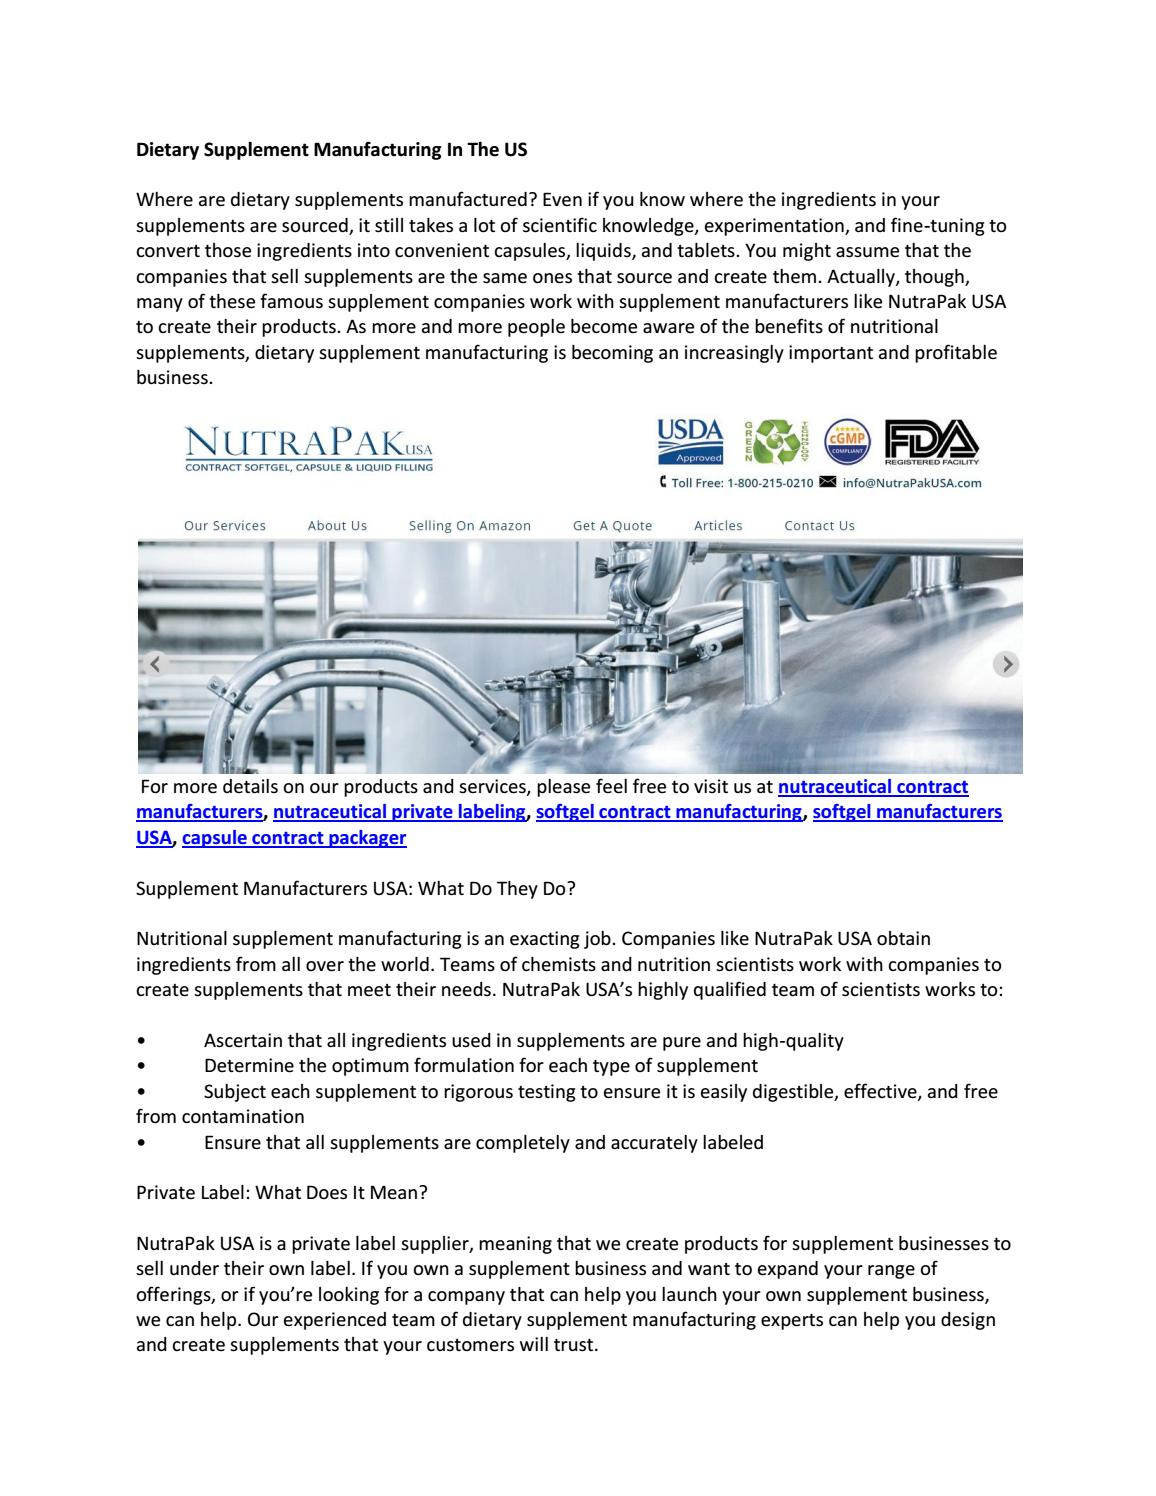 Dietary Supplement Manufacturing In The US by nutrapakusa